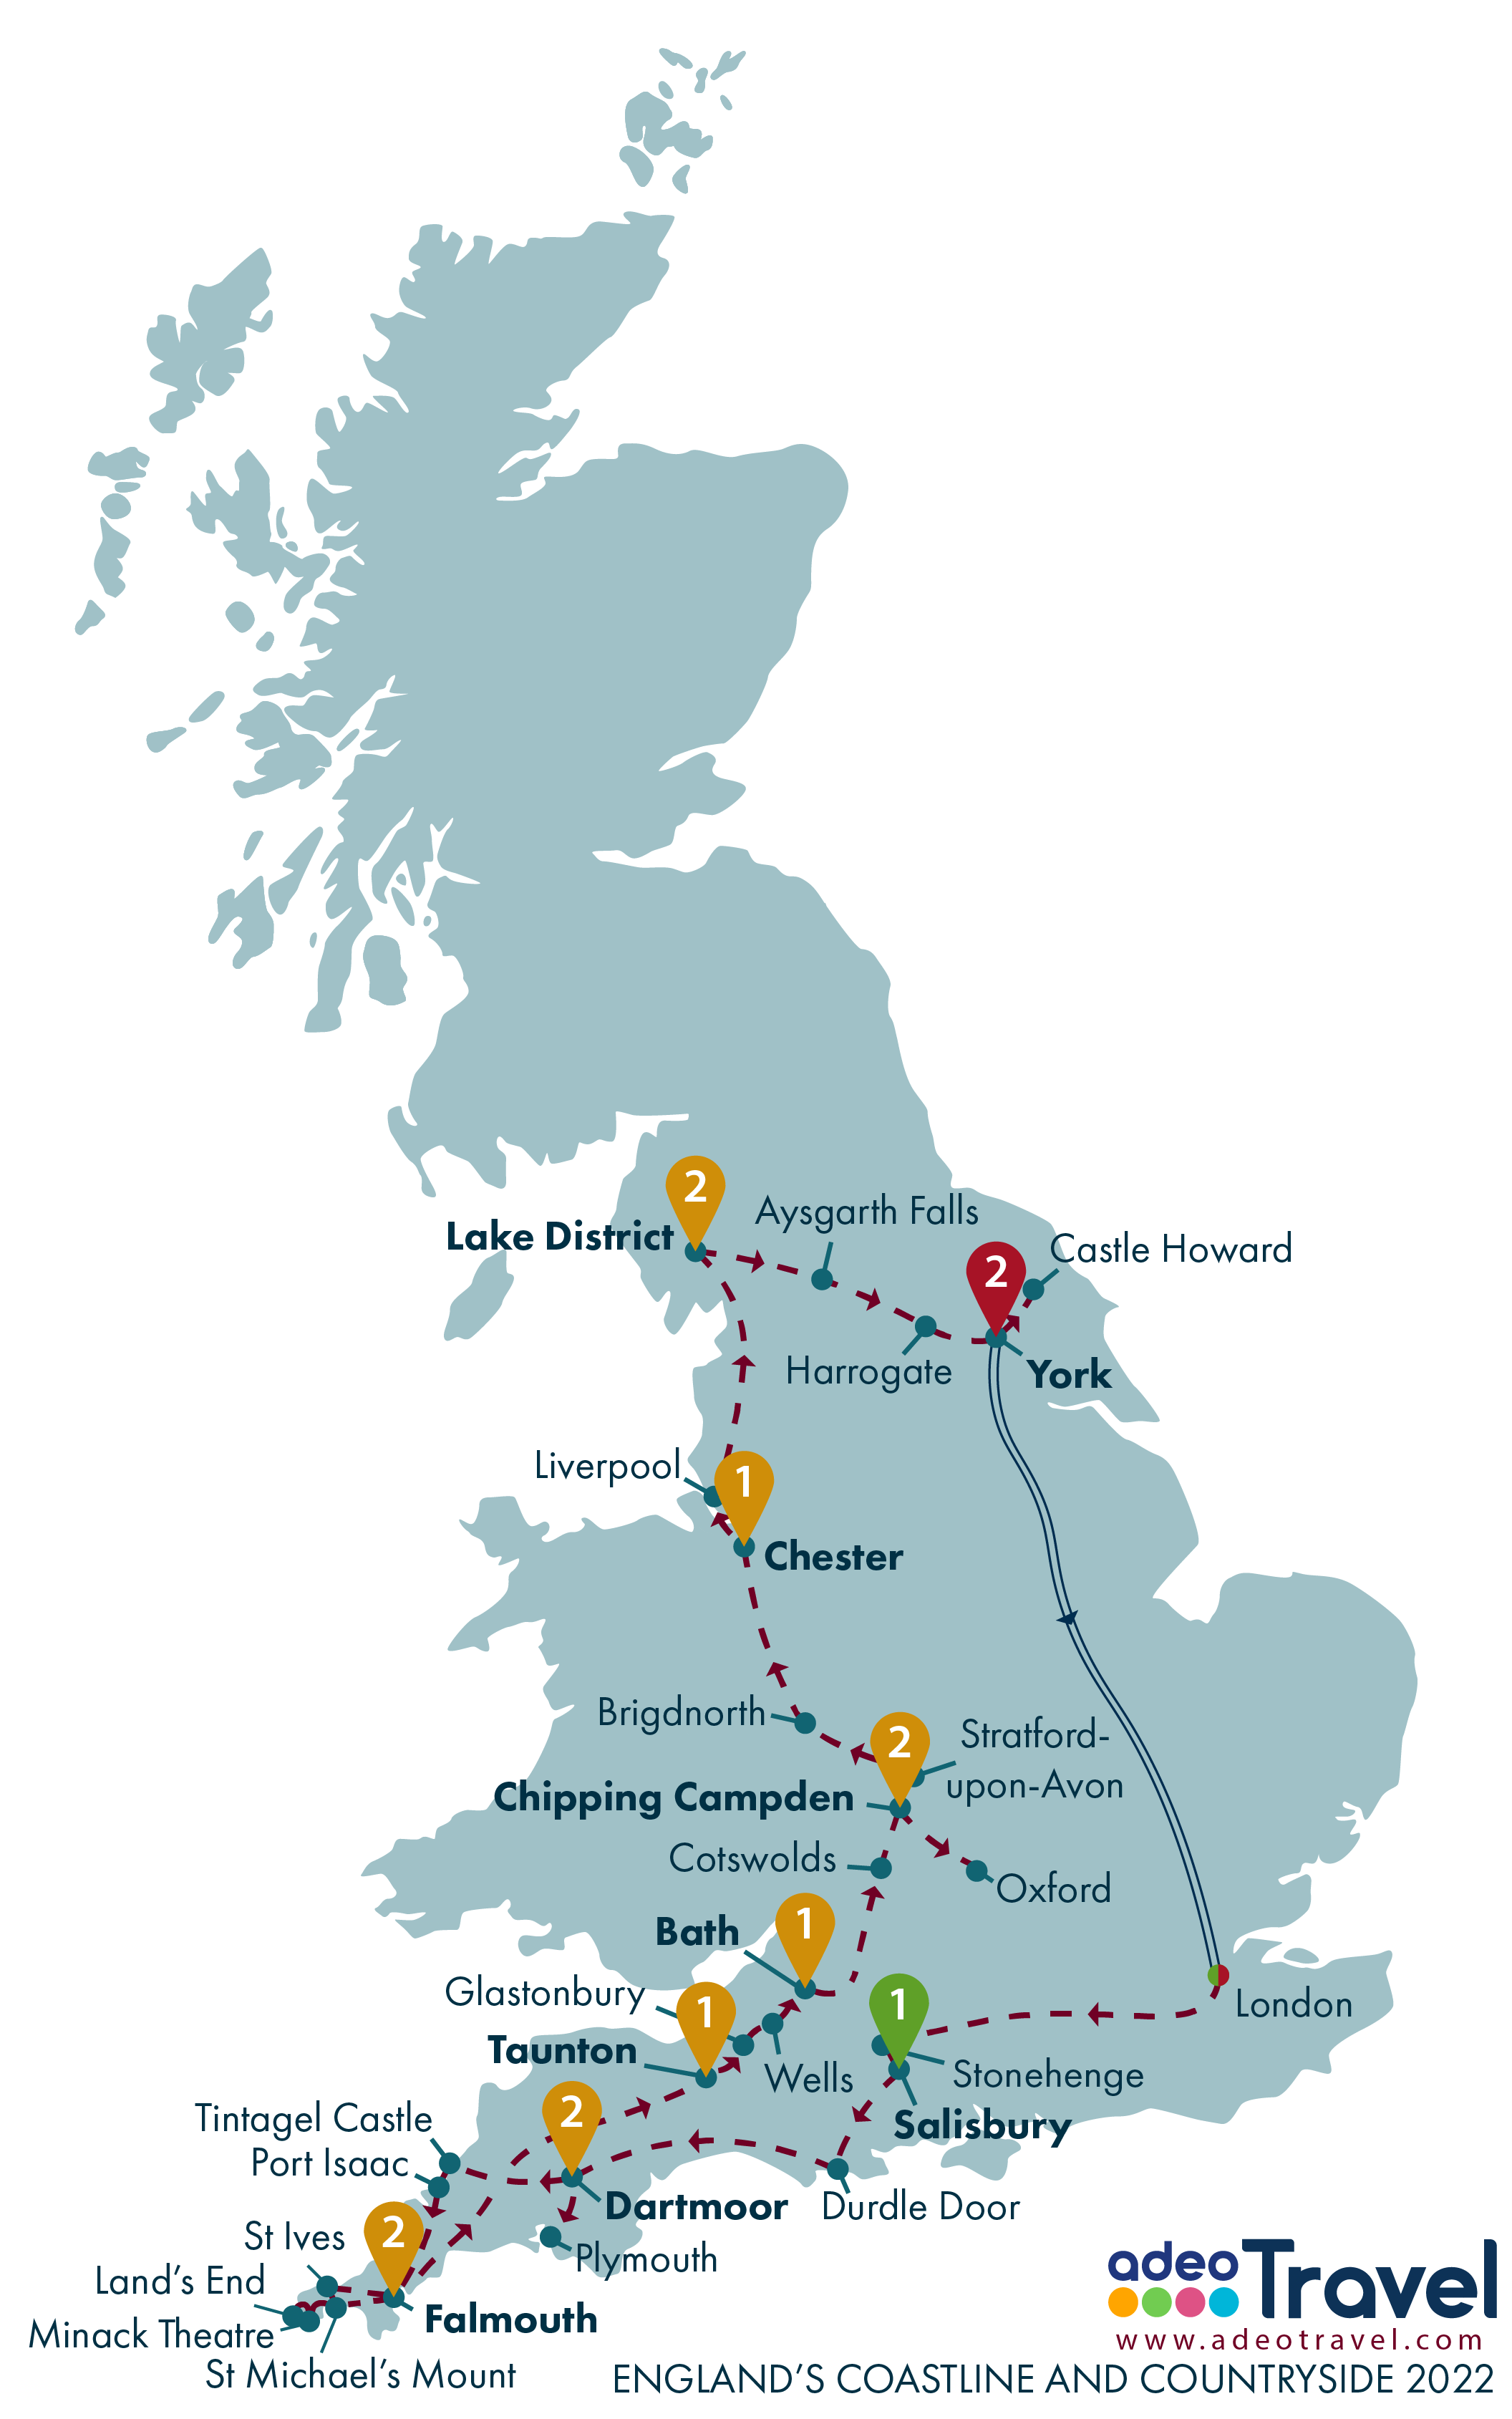 Map - England's Coastline and Countryside 2022